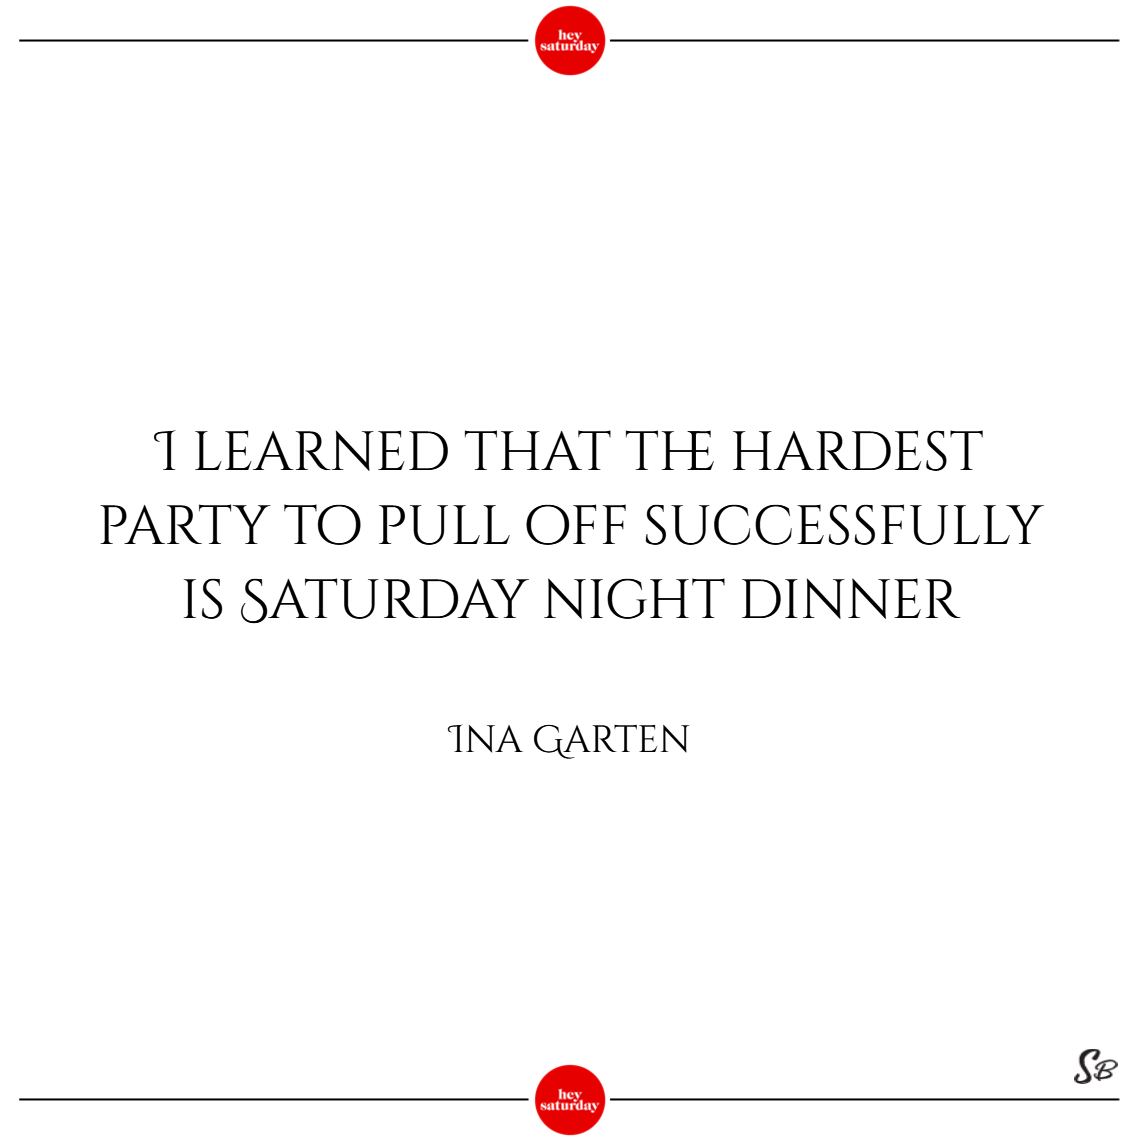 I learned that the hardest party to pull off successfully is saturday night dinner. – ina garten